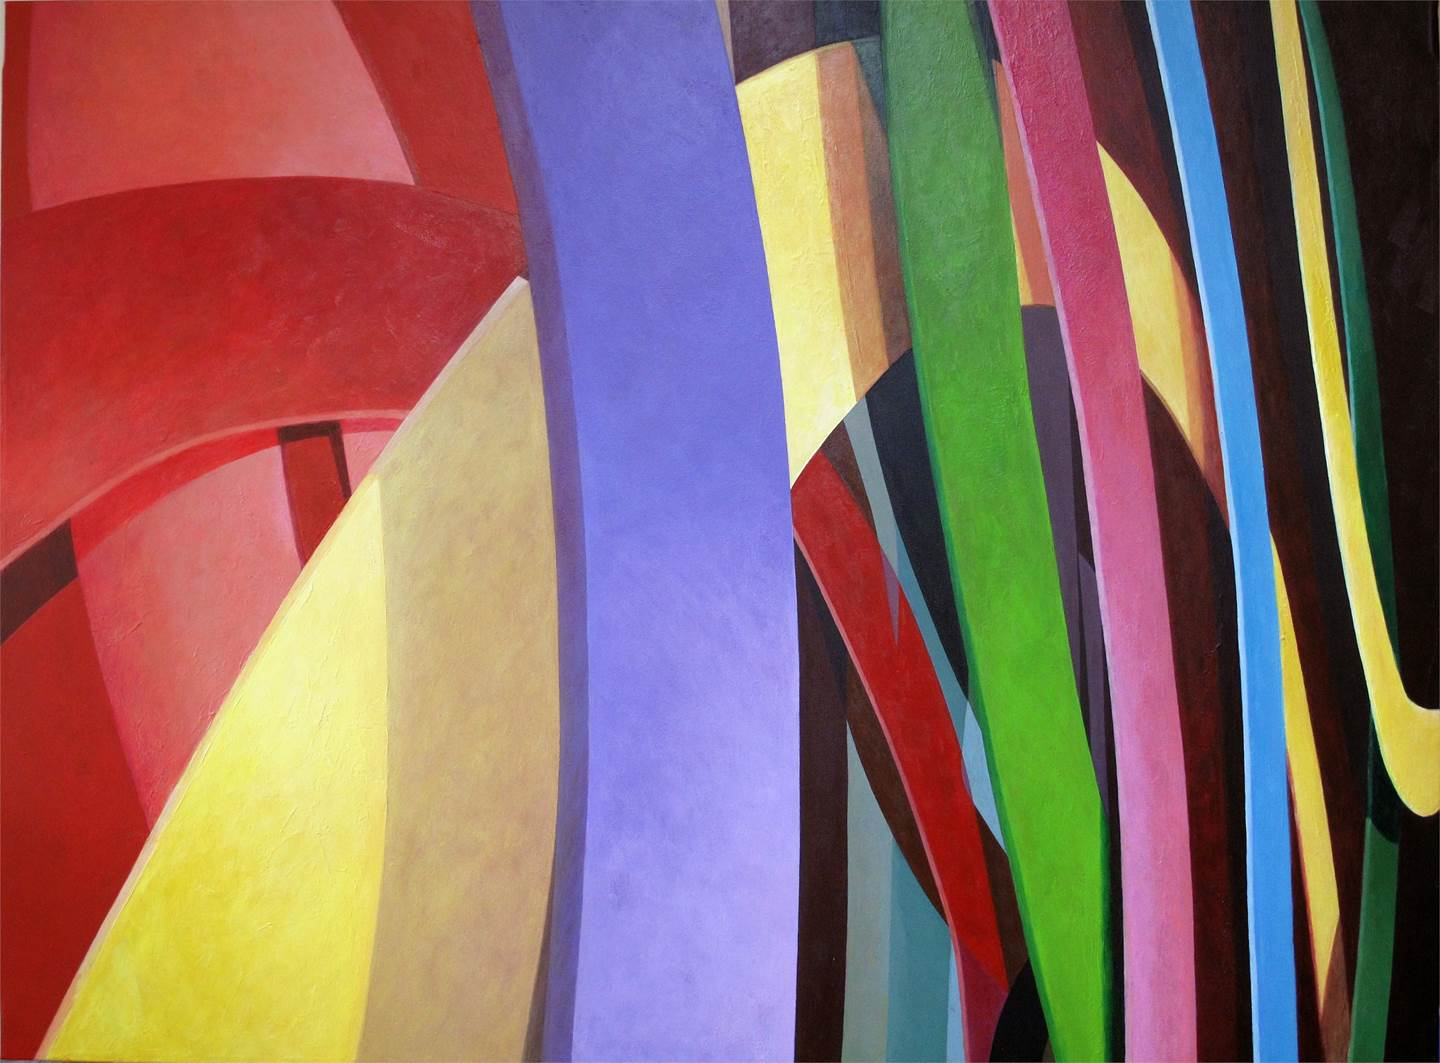 Ábside II, original Geometric Acrylic Painting by Acácio de Carvalho